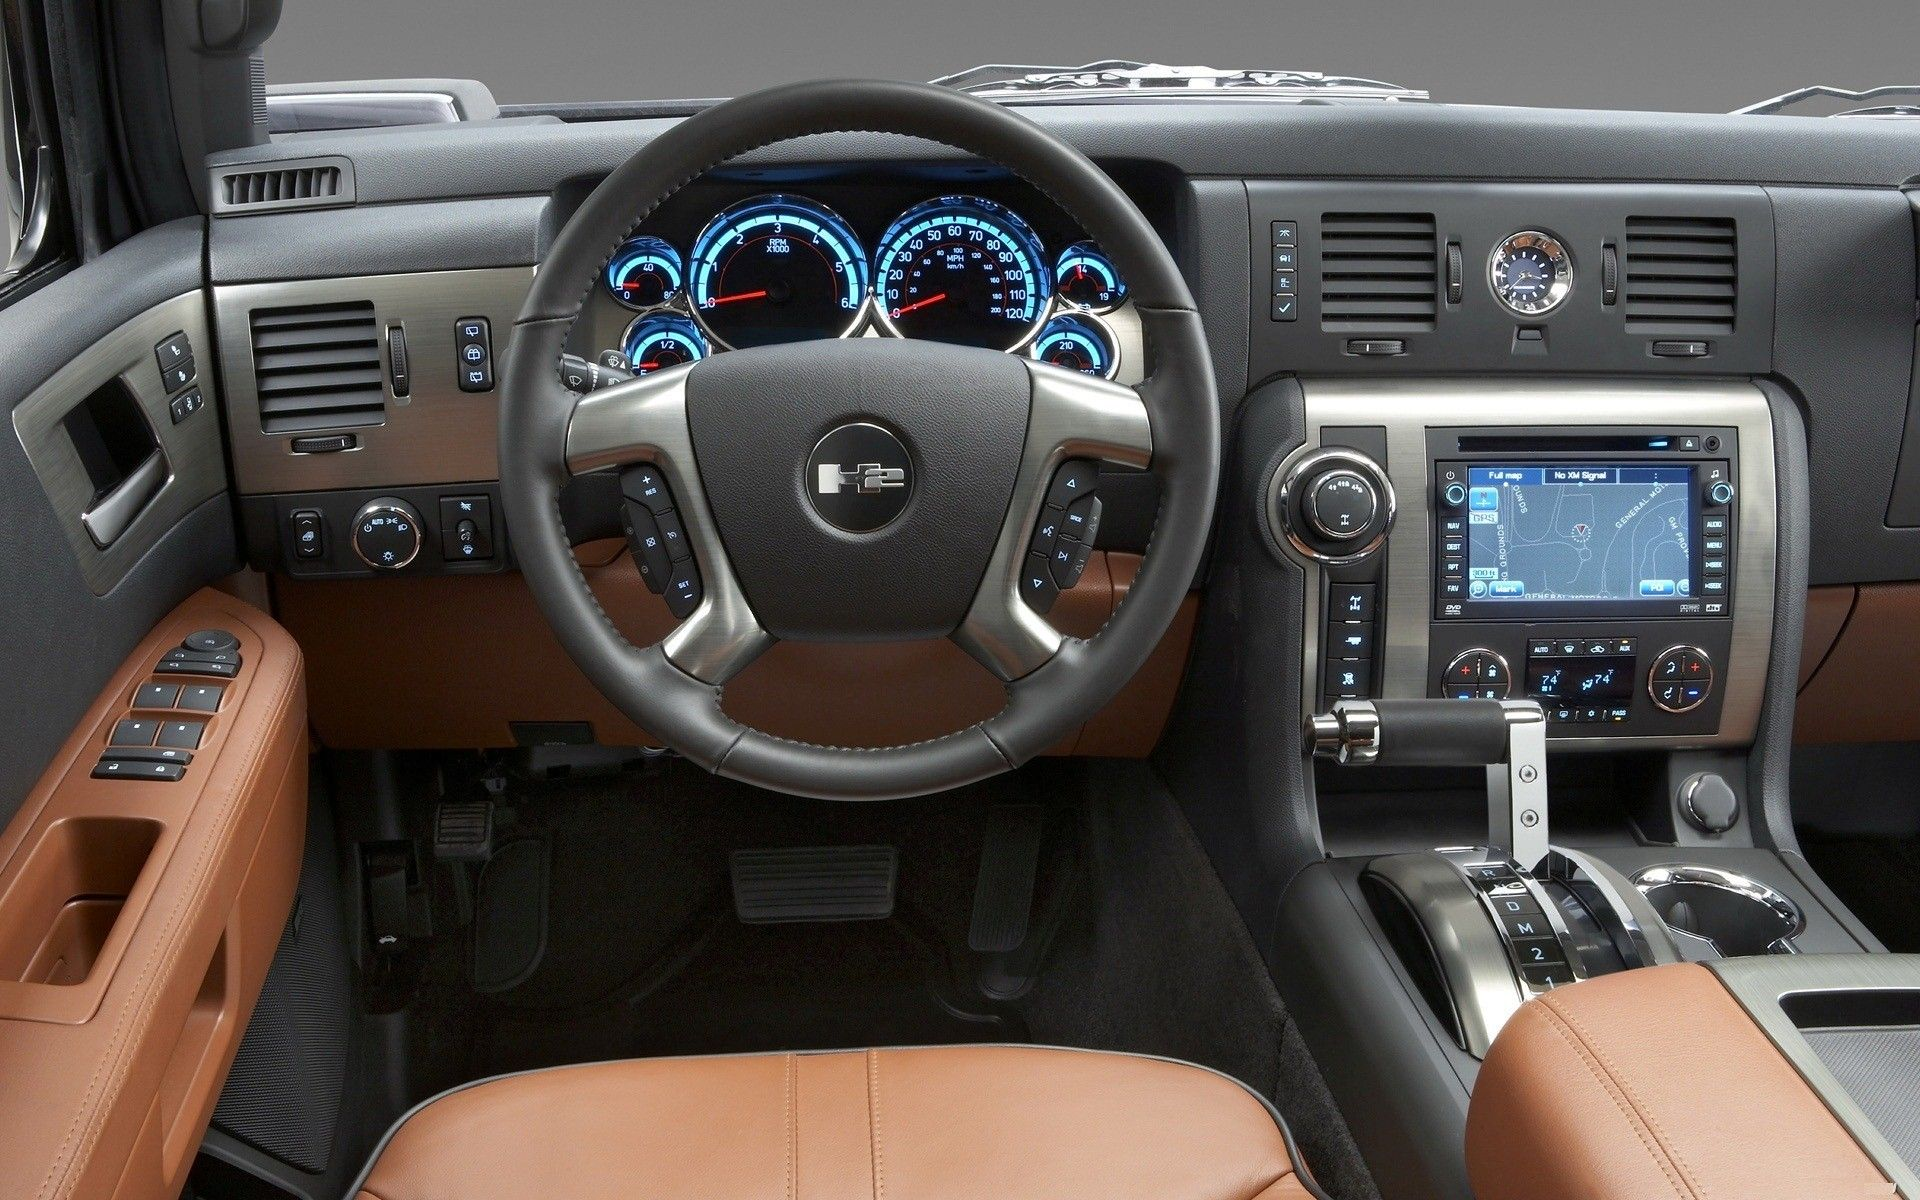 Hummer Car Interior Wallpapers Hummer Interior Hummer Cars Hummer H2